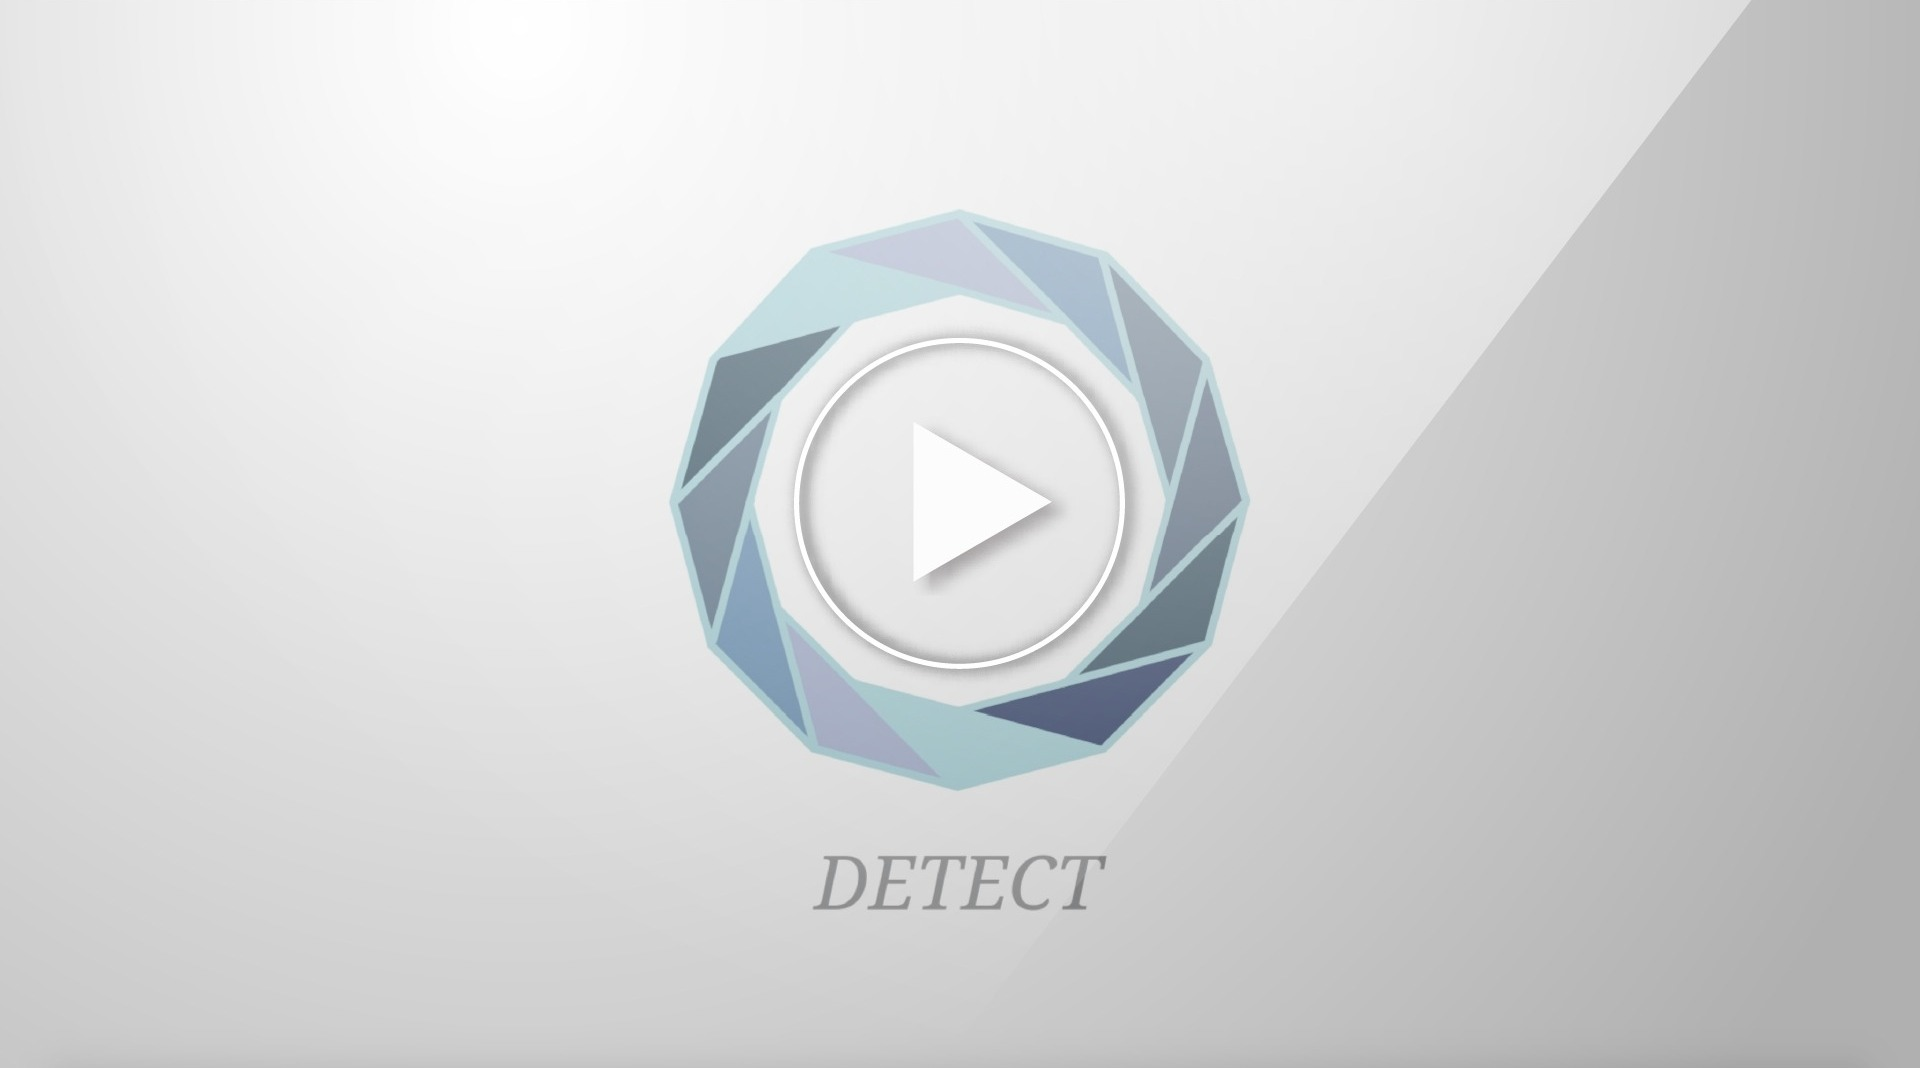 Video_IDP-In-One-Cover-Detect-1